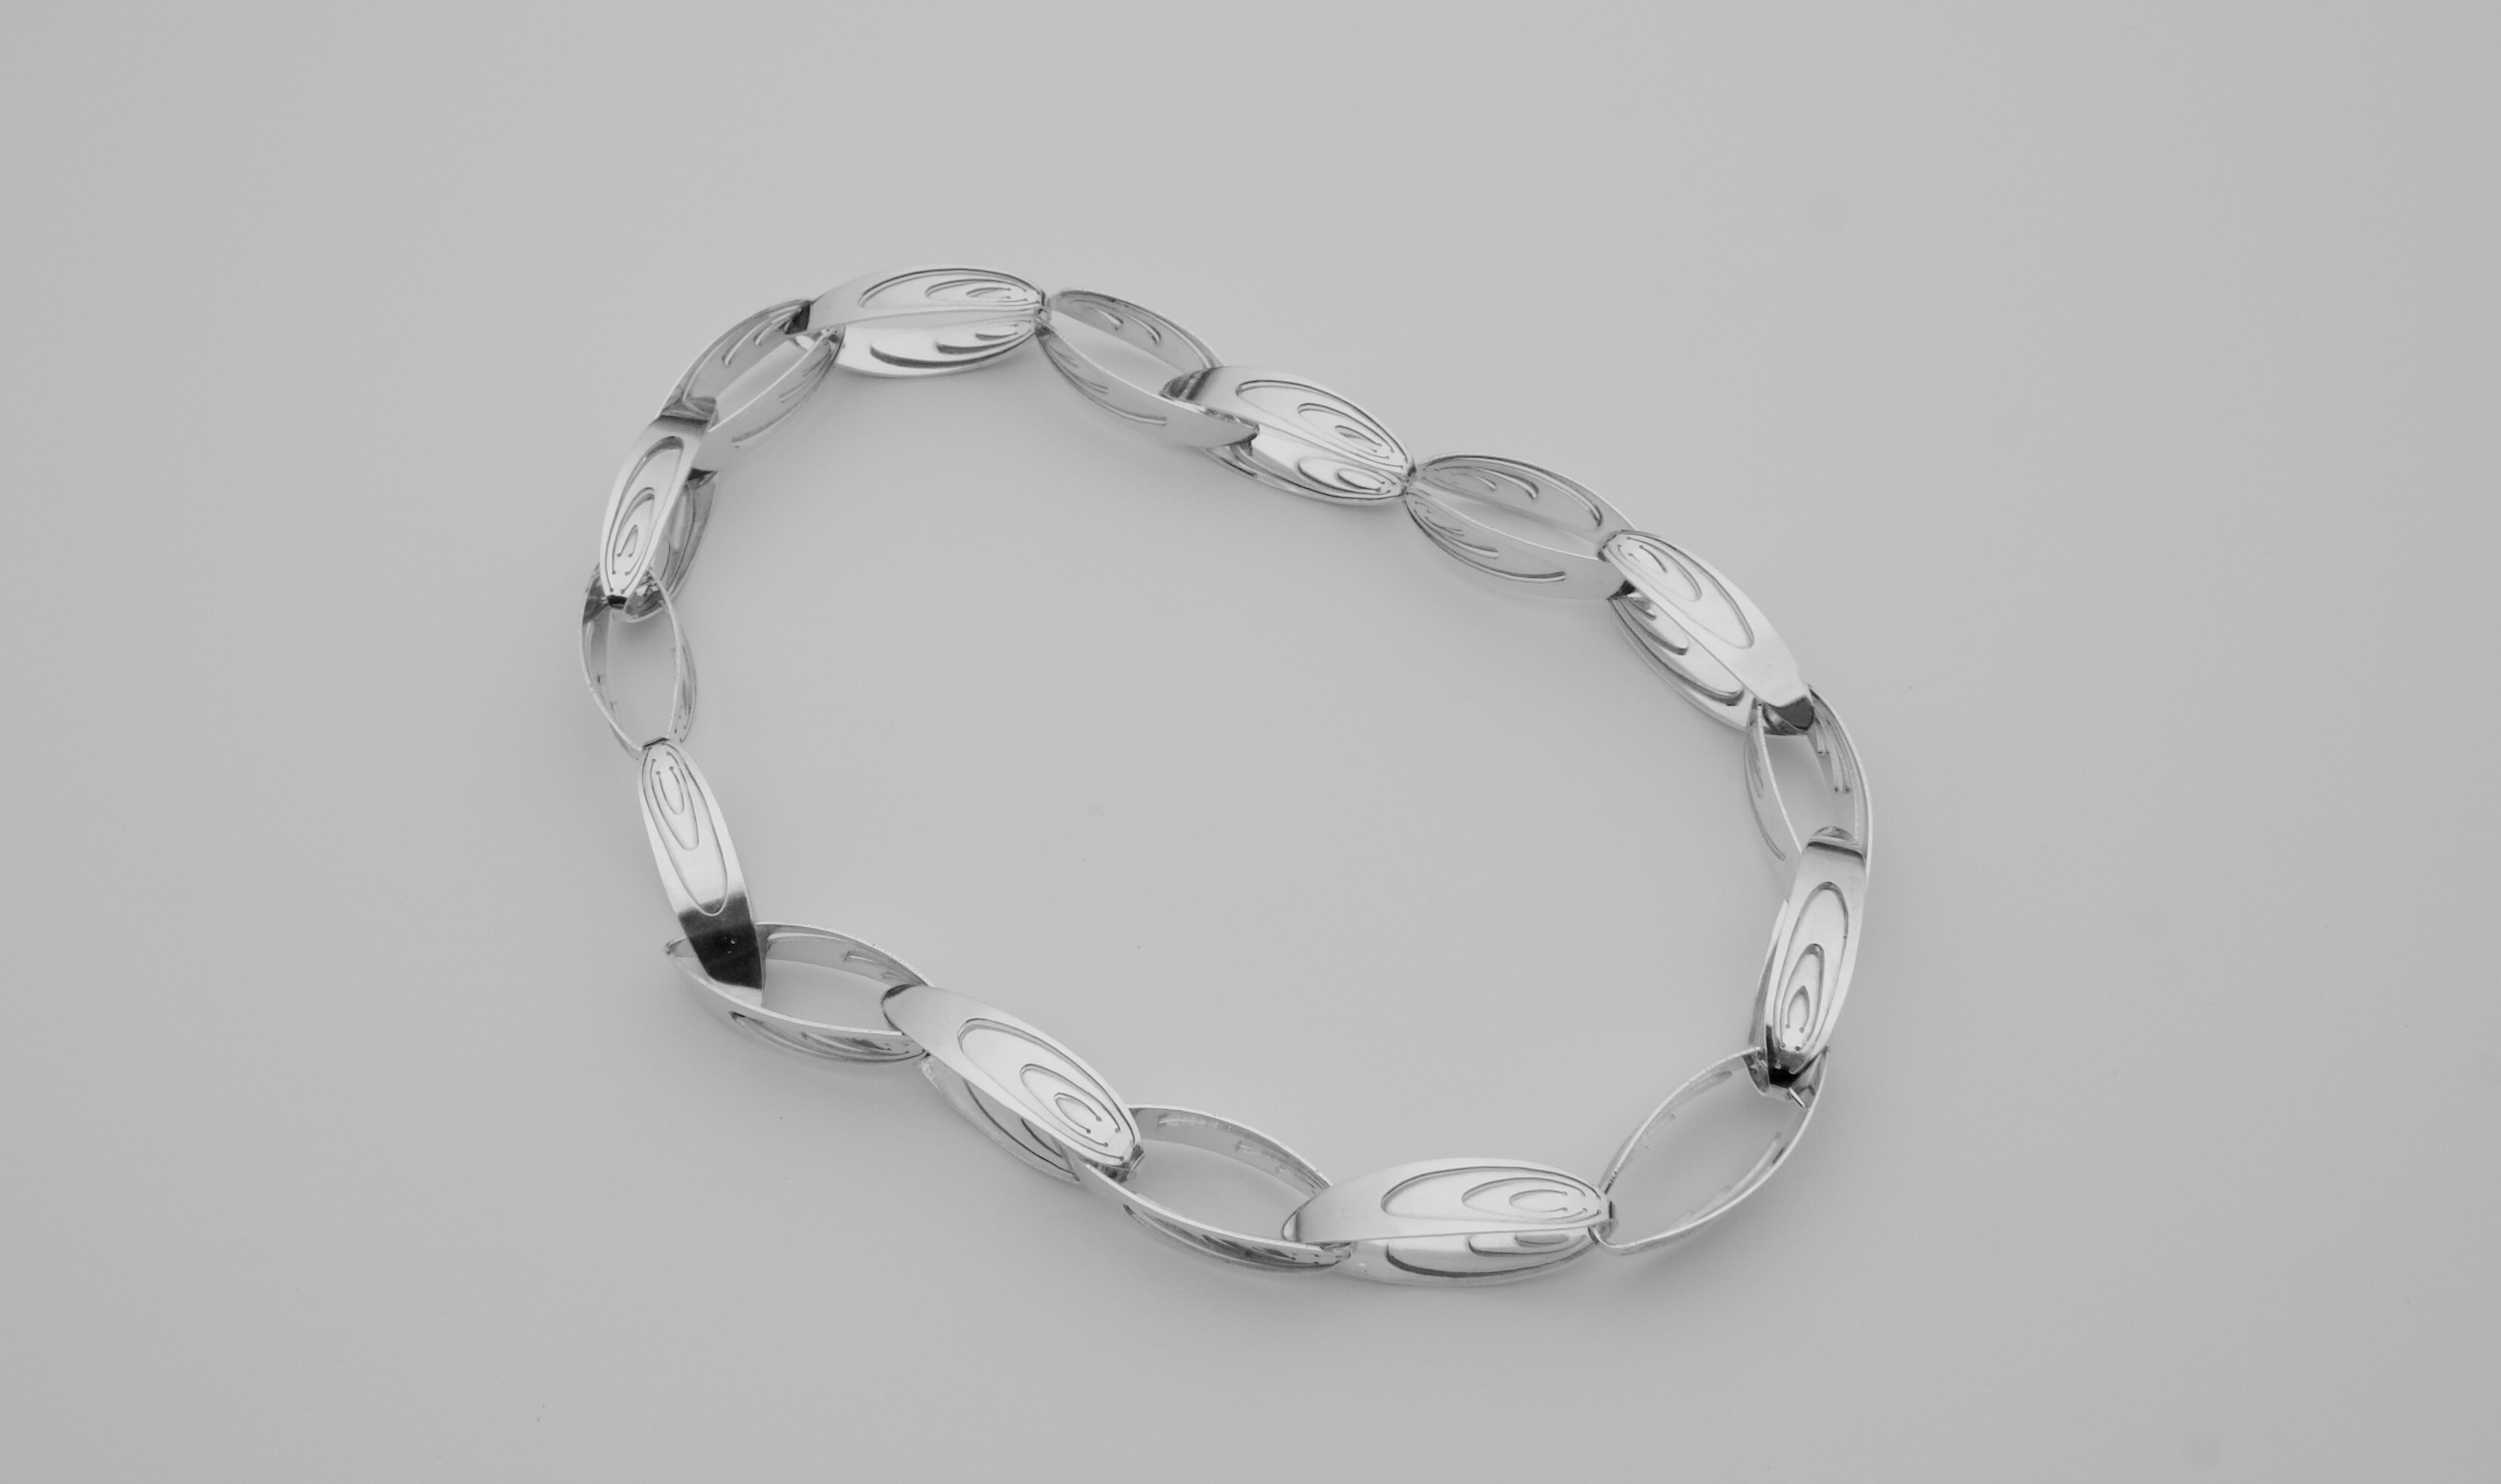 silver necklace : 750 €